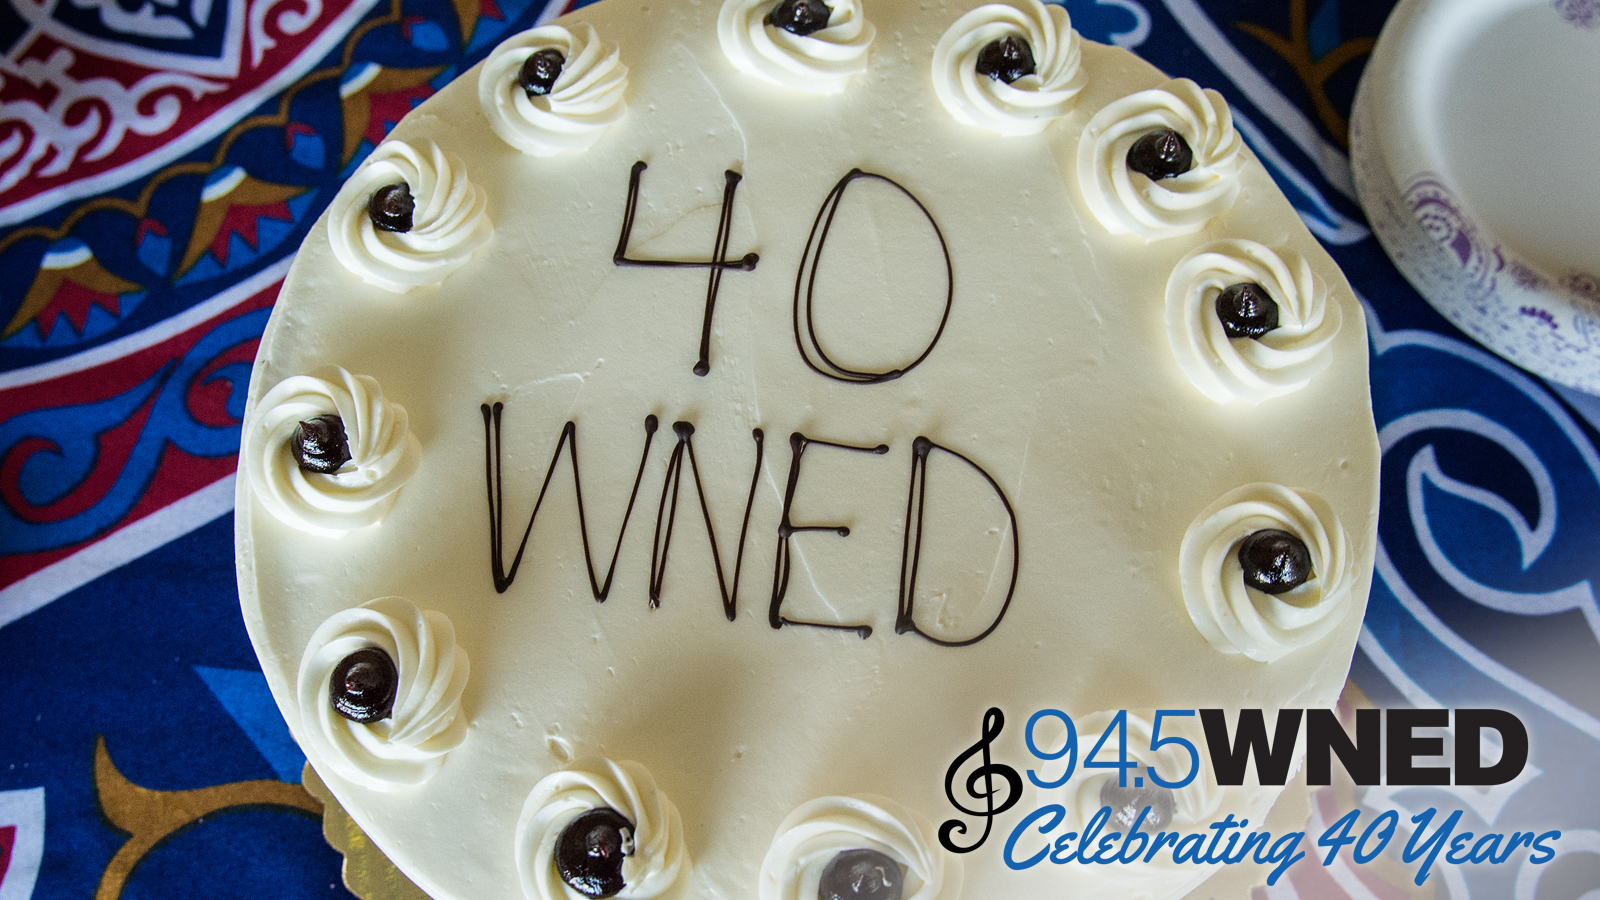 Cake celebrating 40 Years of Classical 94.5 WNED